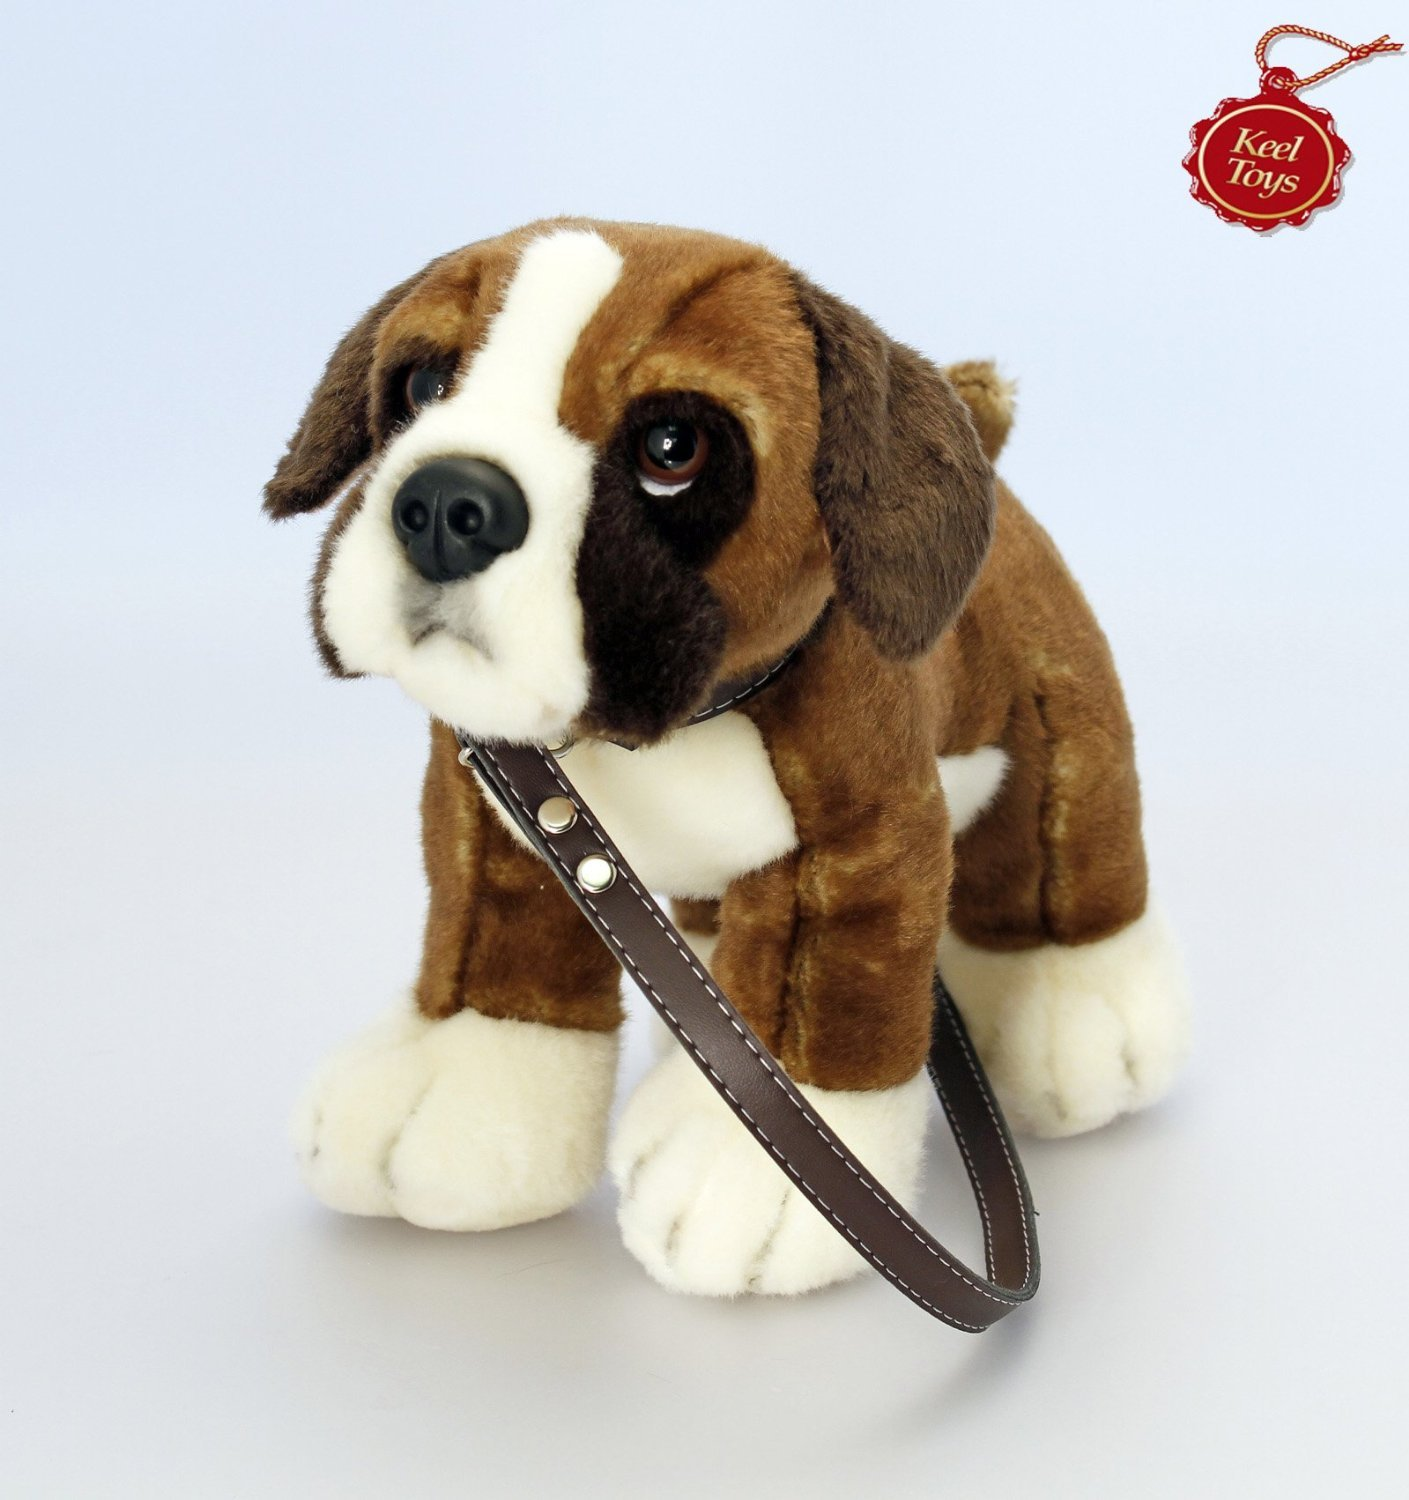 Keel Toys Cuddly Plush labrador on the lead Dog Amazon